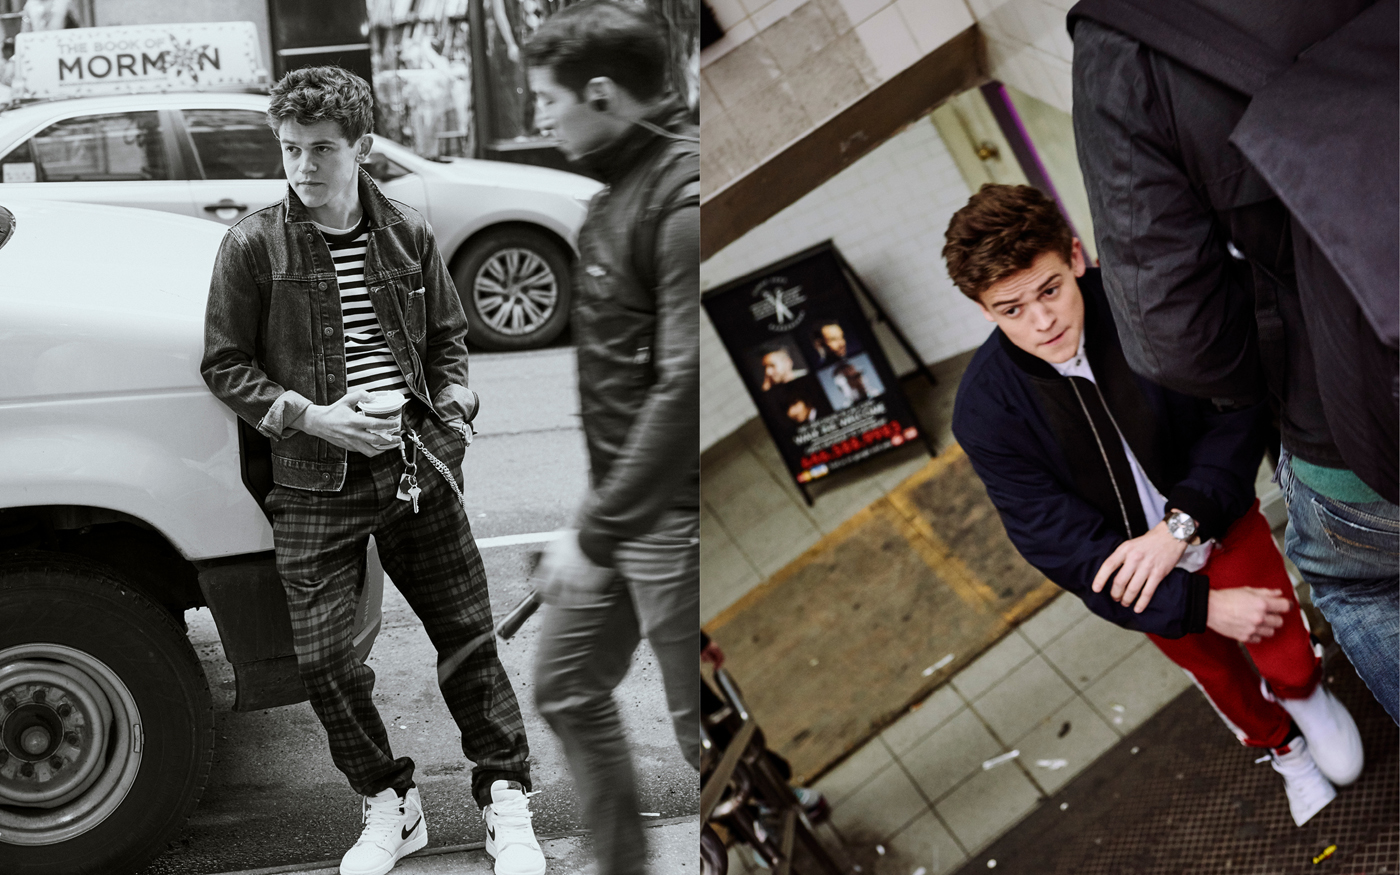 Left: Jacket by Levi's. T-shirt by Ami. Trousers by Todd Snyder. Sneakers, worn throughout, by Nike.Right: Jacket by Louis Vuitton. Shirt by Rag & Bone. Trousers by Topman.